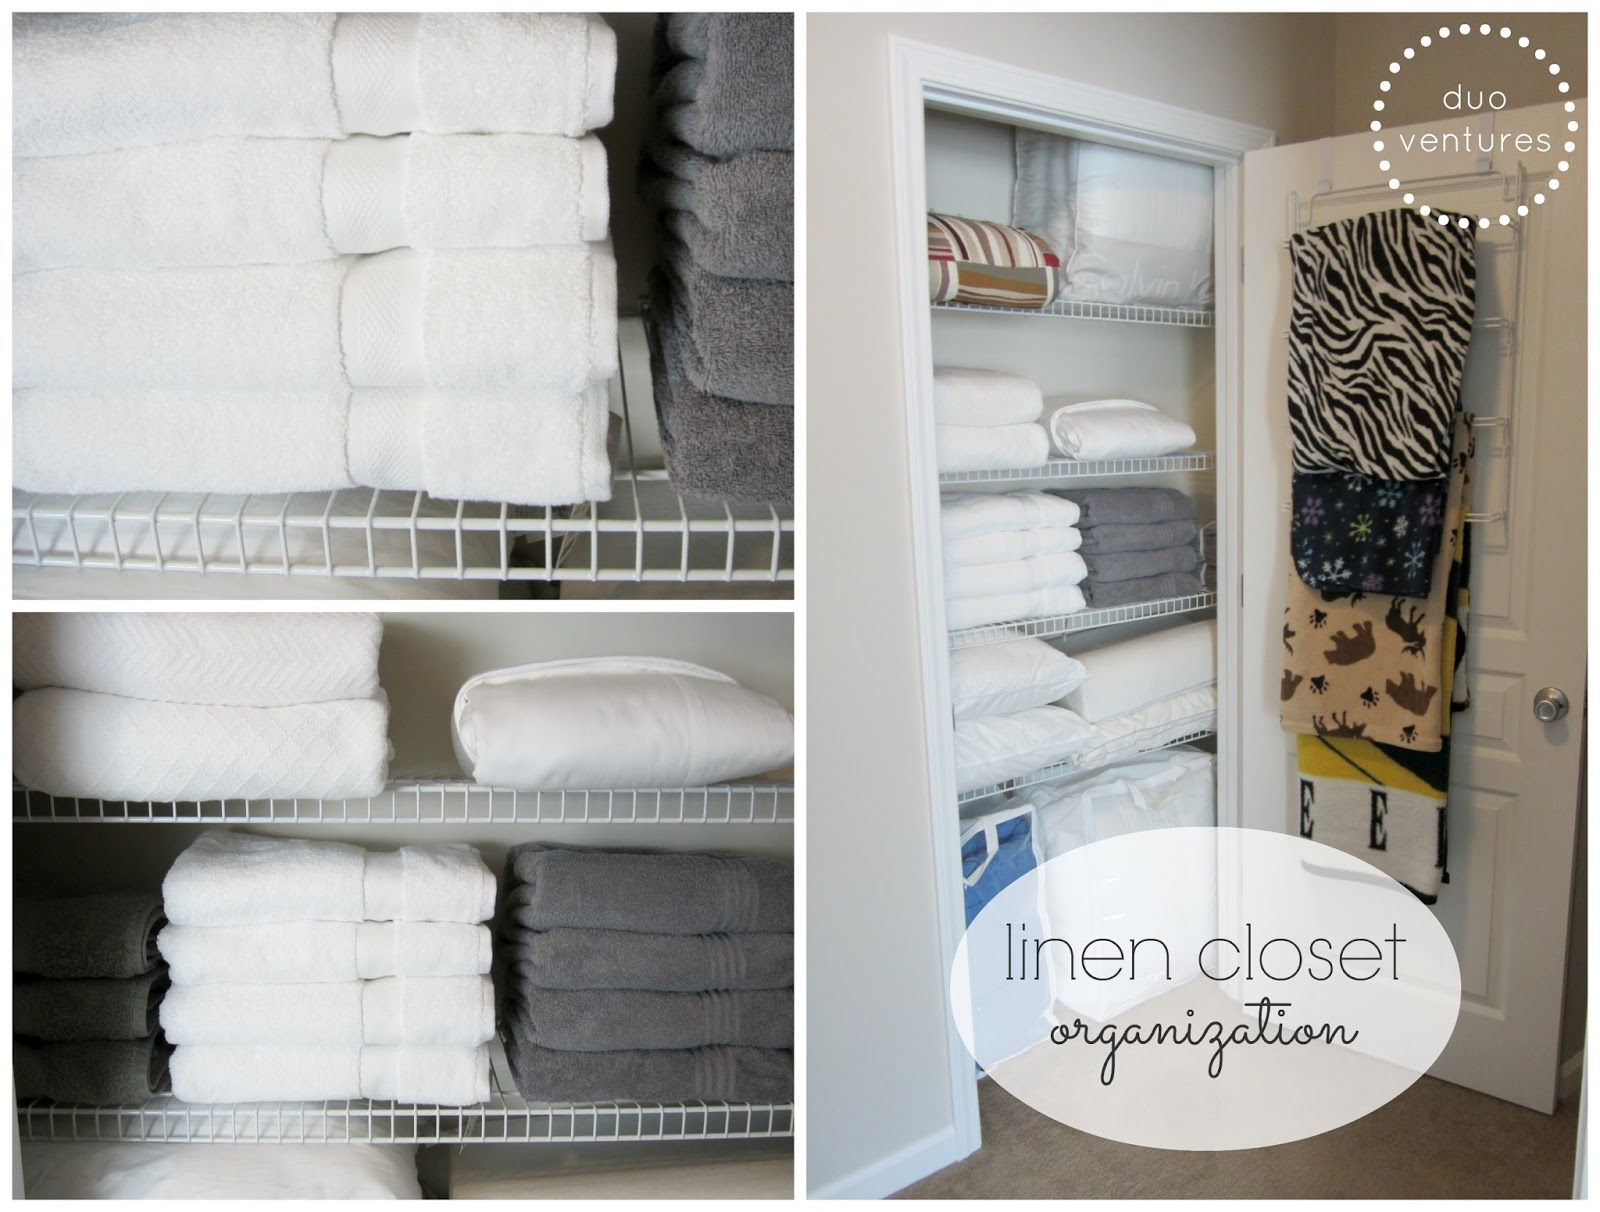 Linen Closet Organizer Systems Duo Ventures Organization